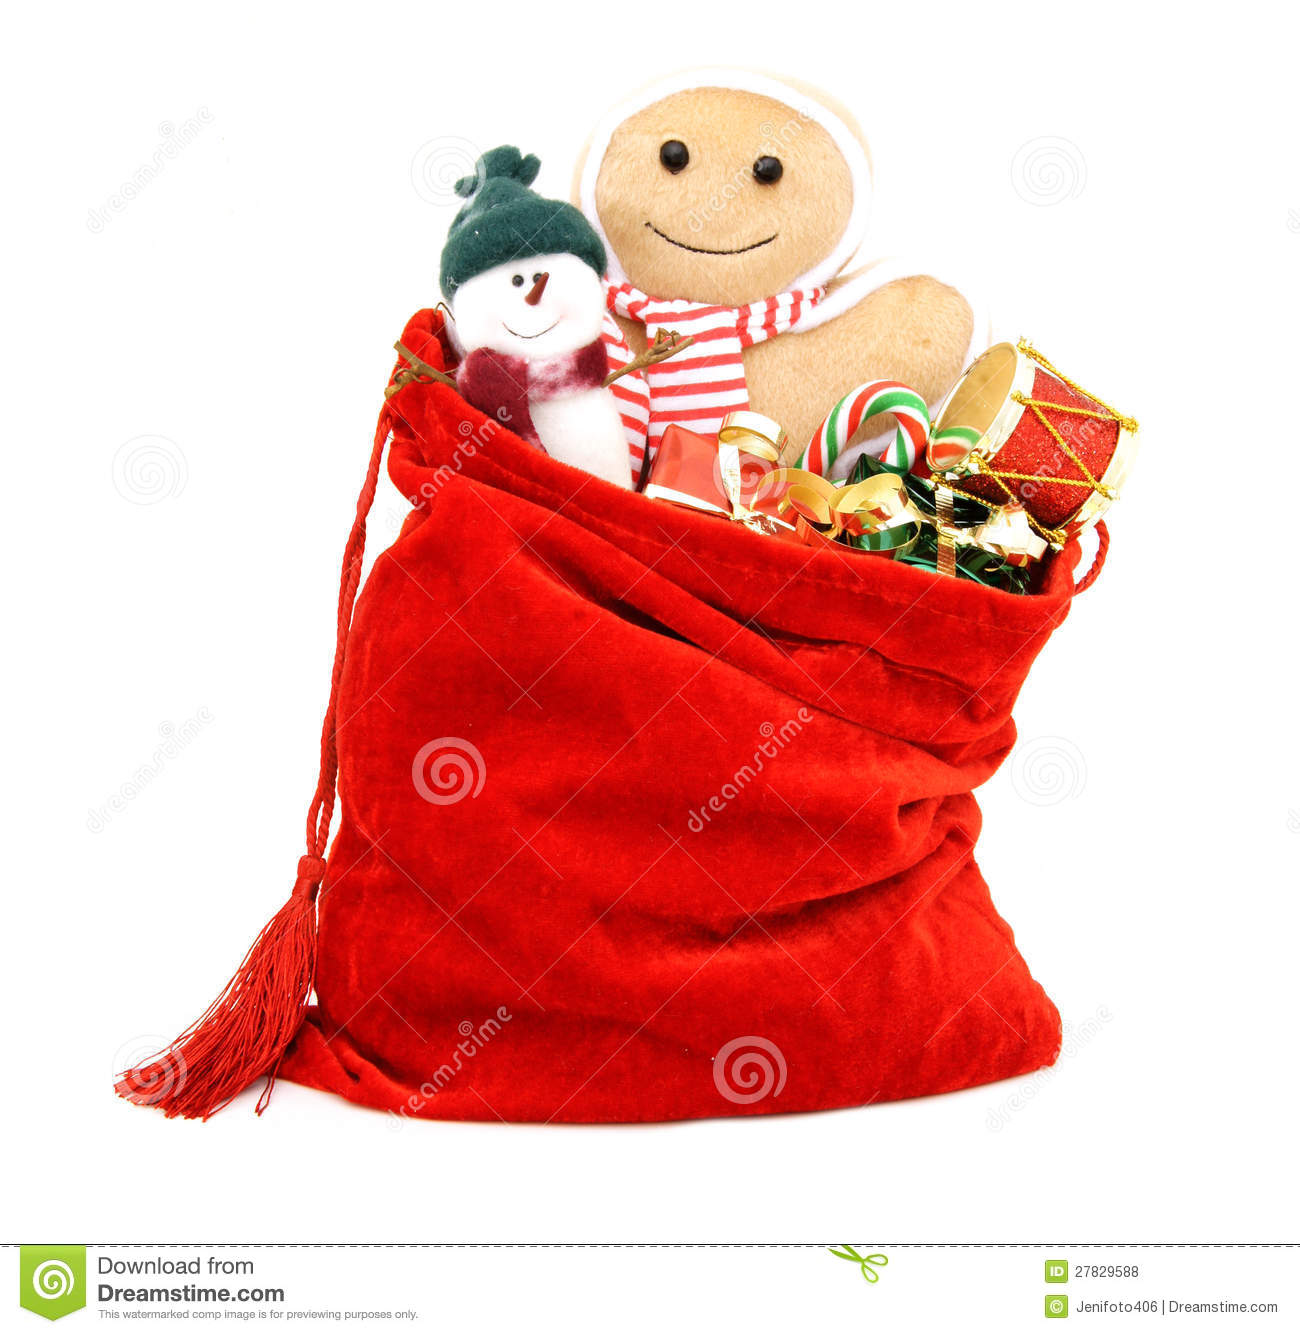 Presents Toys Christmas : Christmas gifts and toys royalty free stock photos image